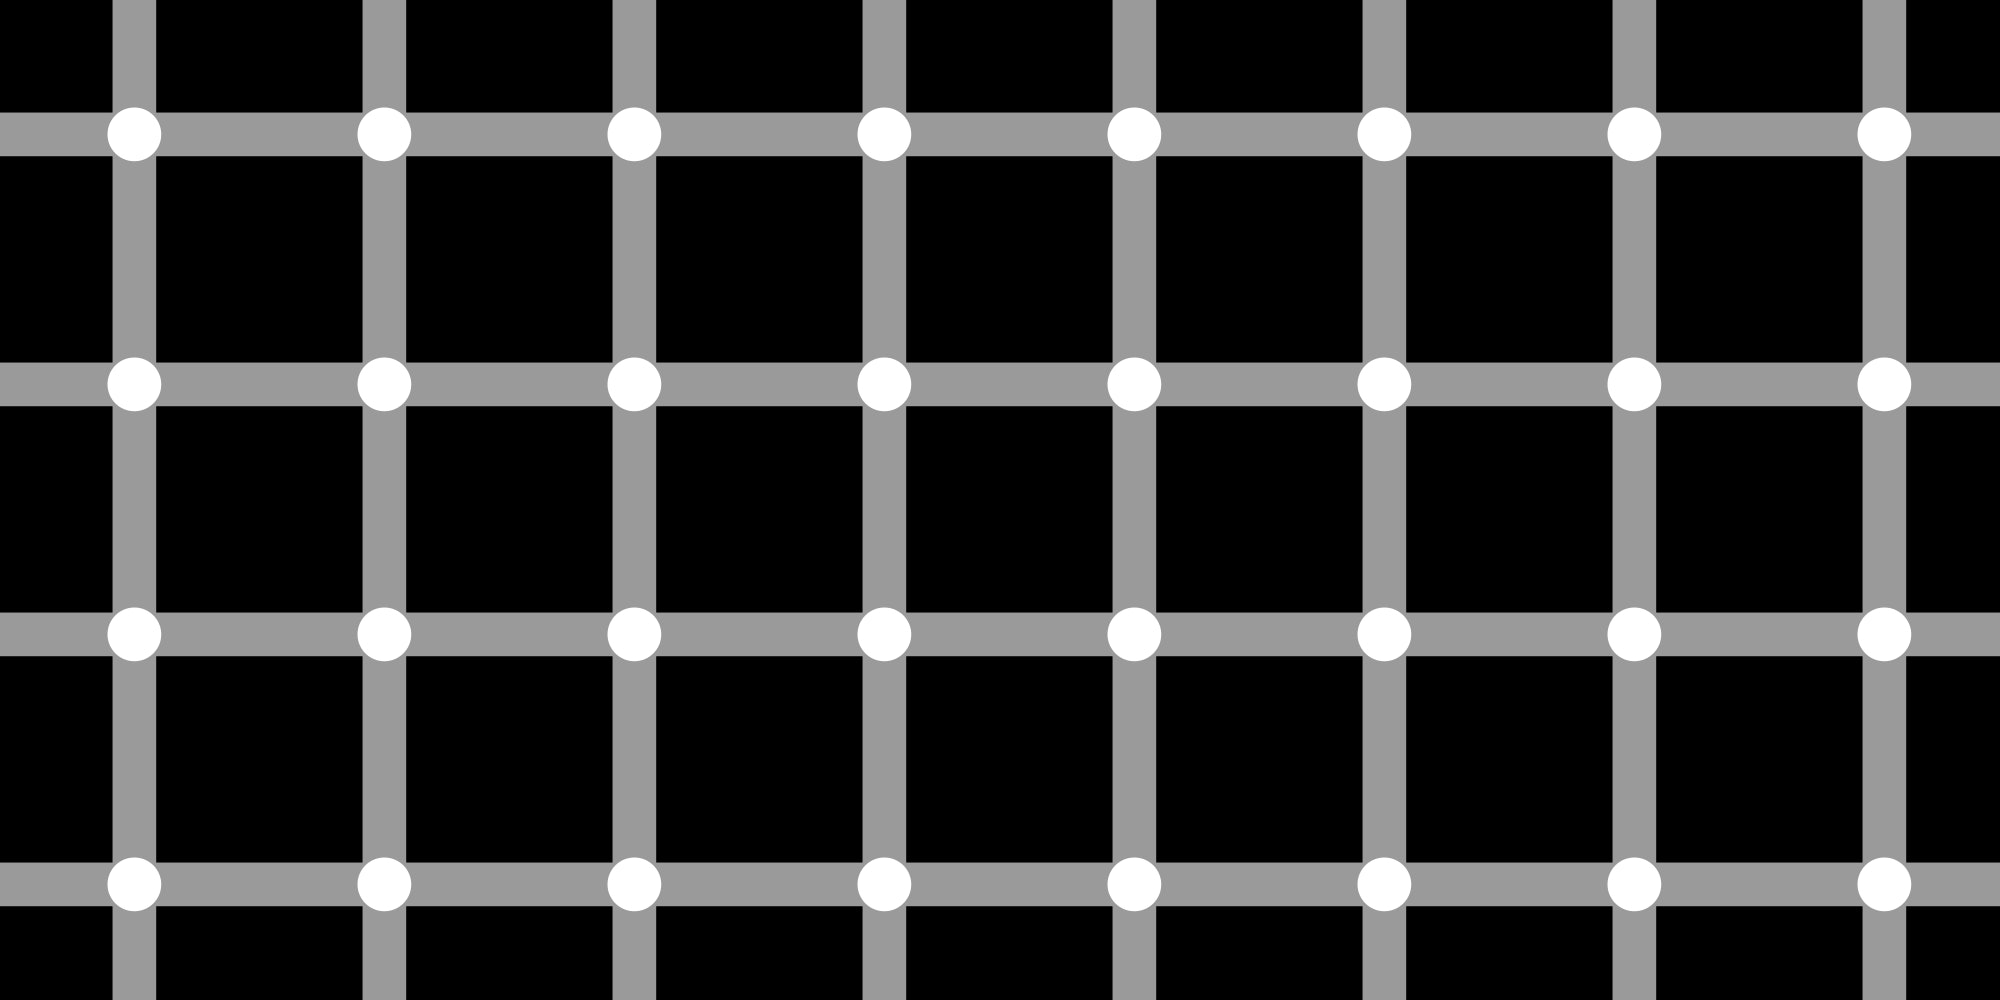 Hermann grid illusion.